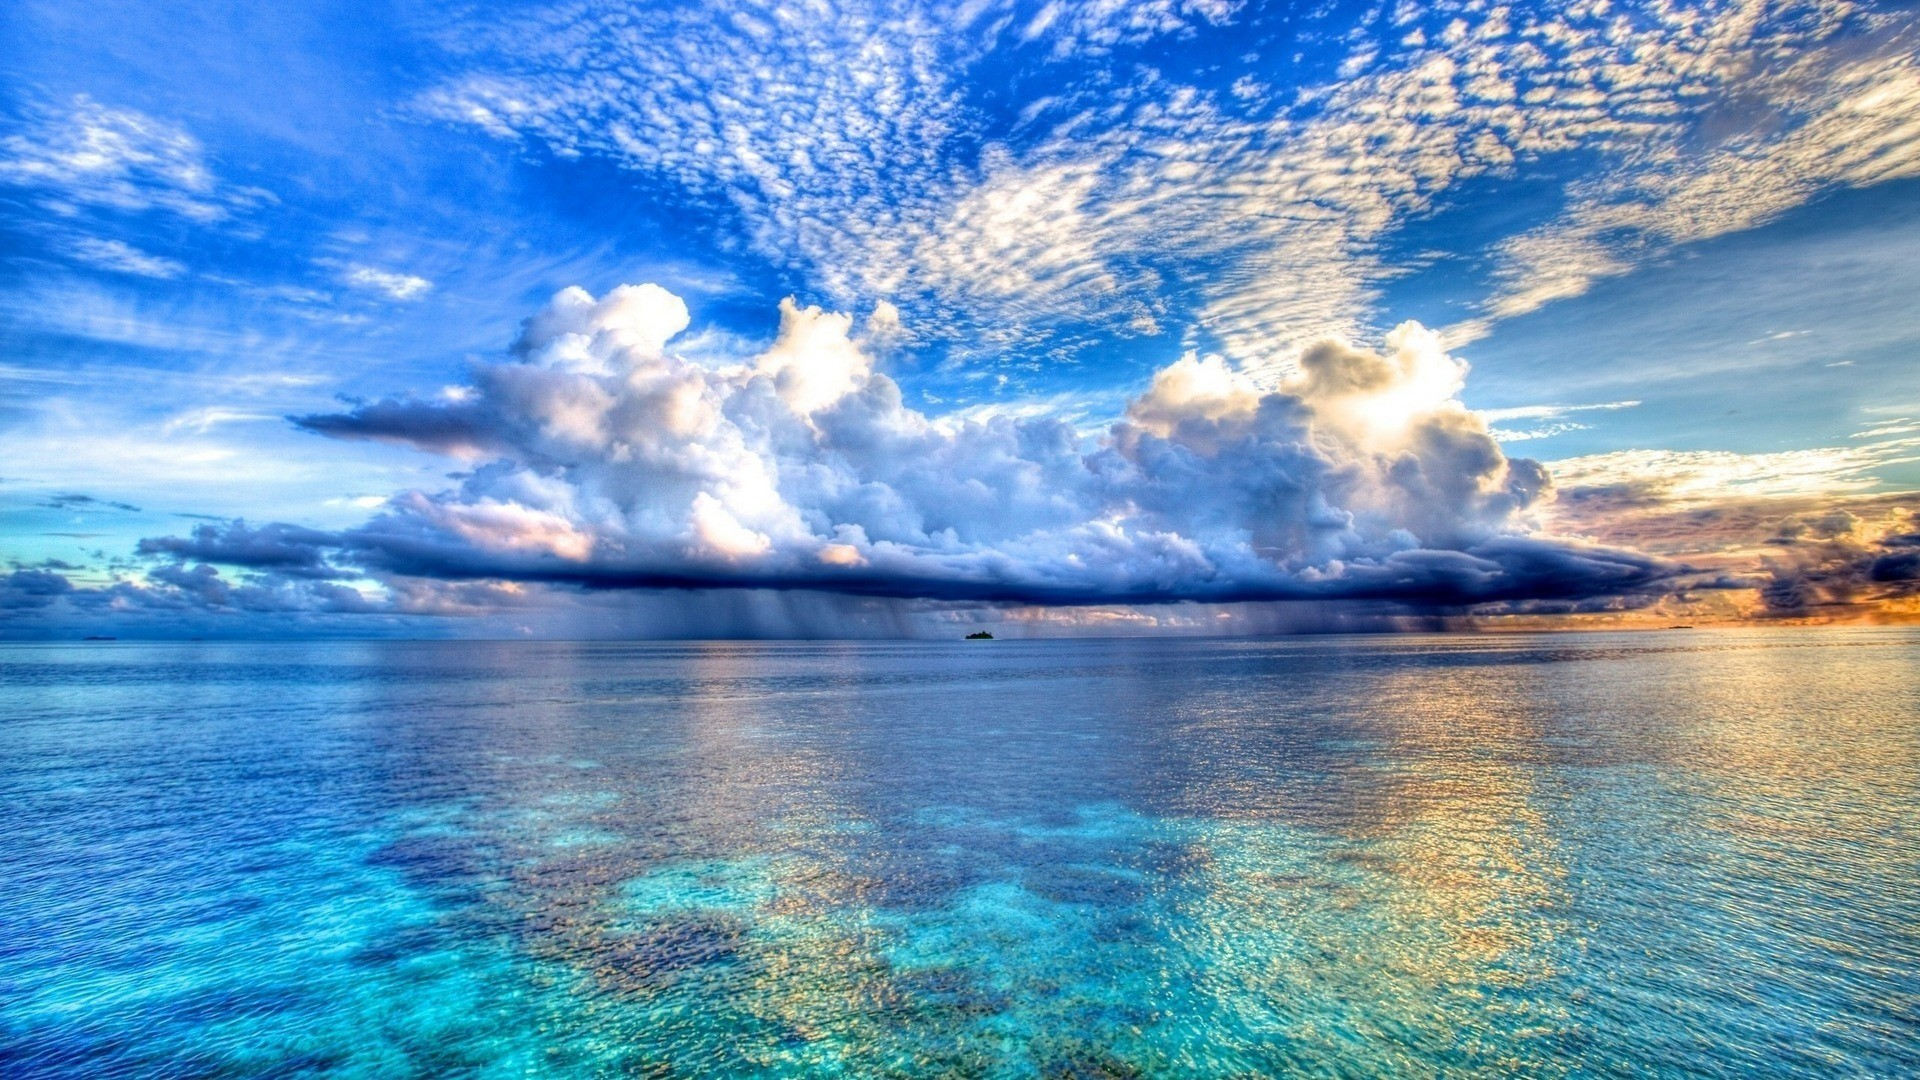 Ocean Wallpaper Backgrounds 61 Pictures